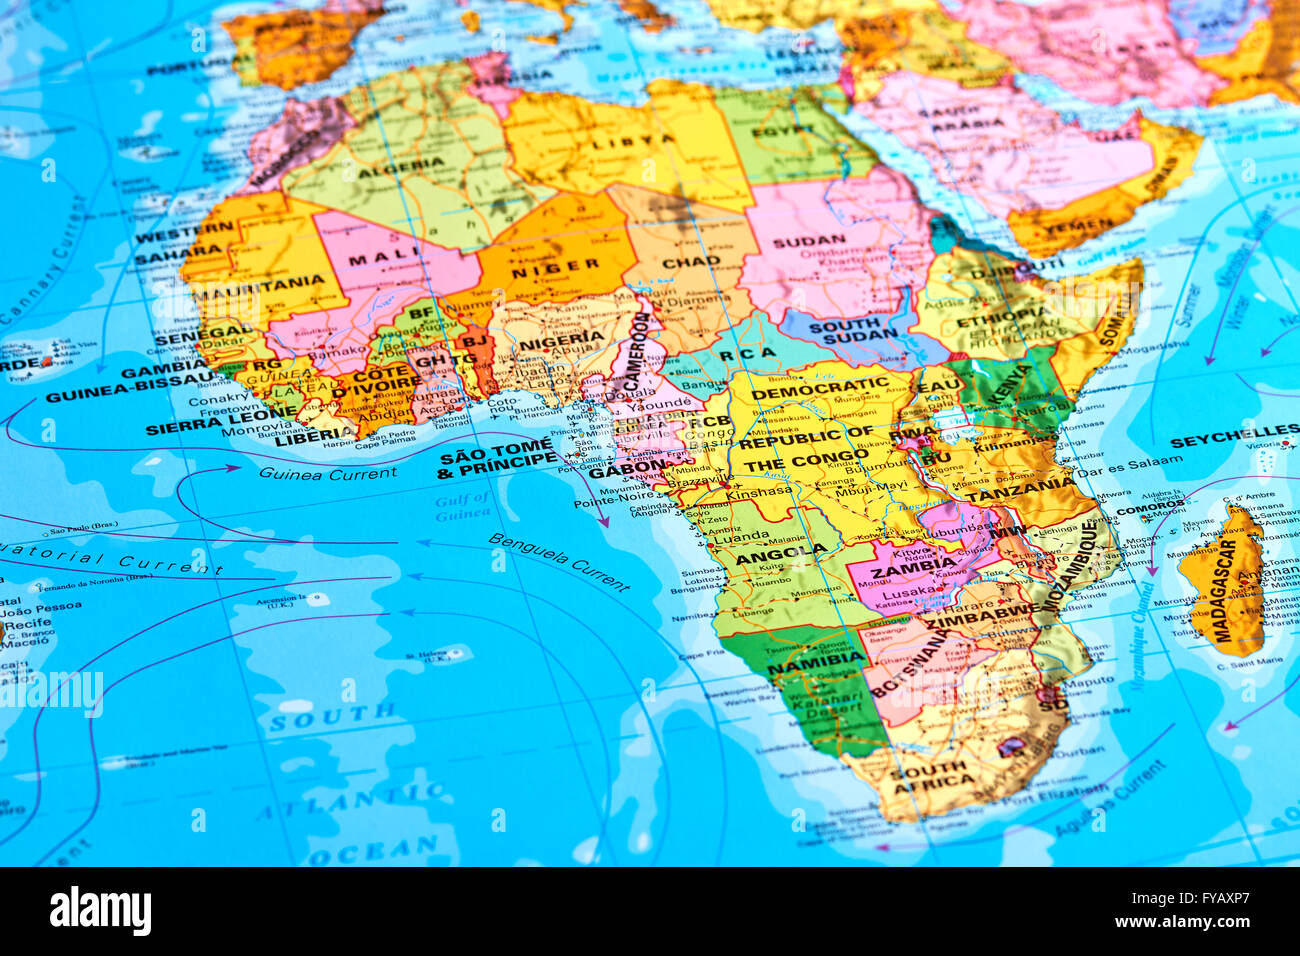 Africa oldest continent on the world map stock photo royalty africa oldest continent on the world map gumiabroncs Gallery